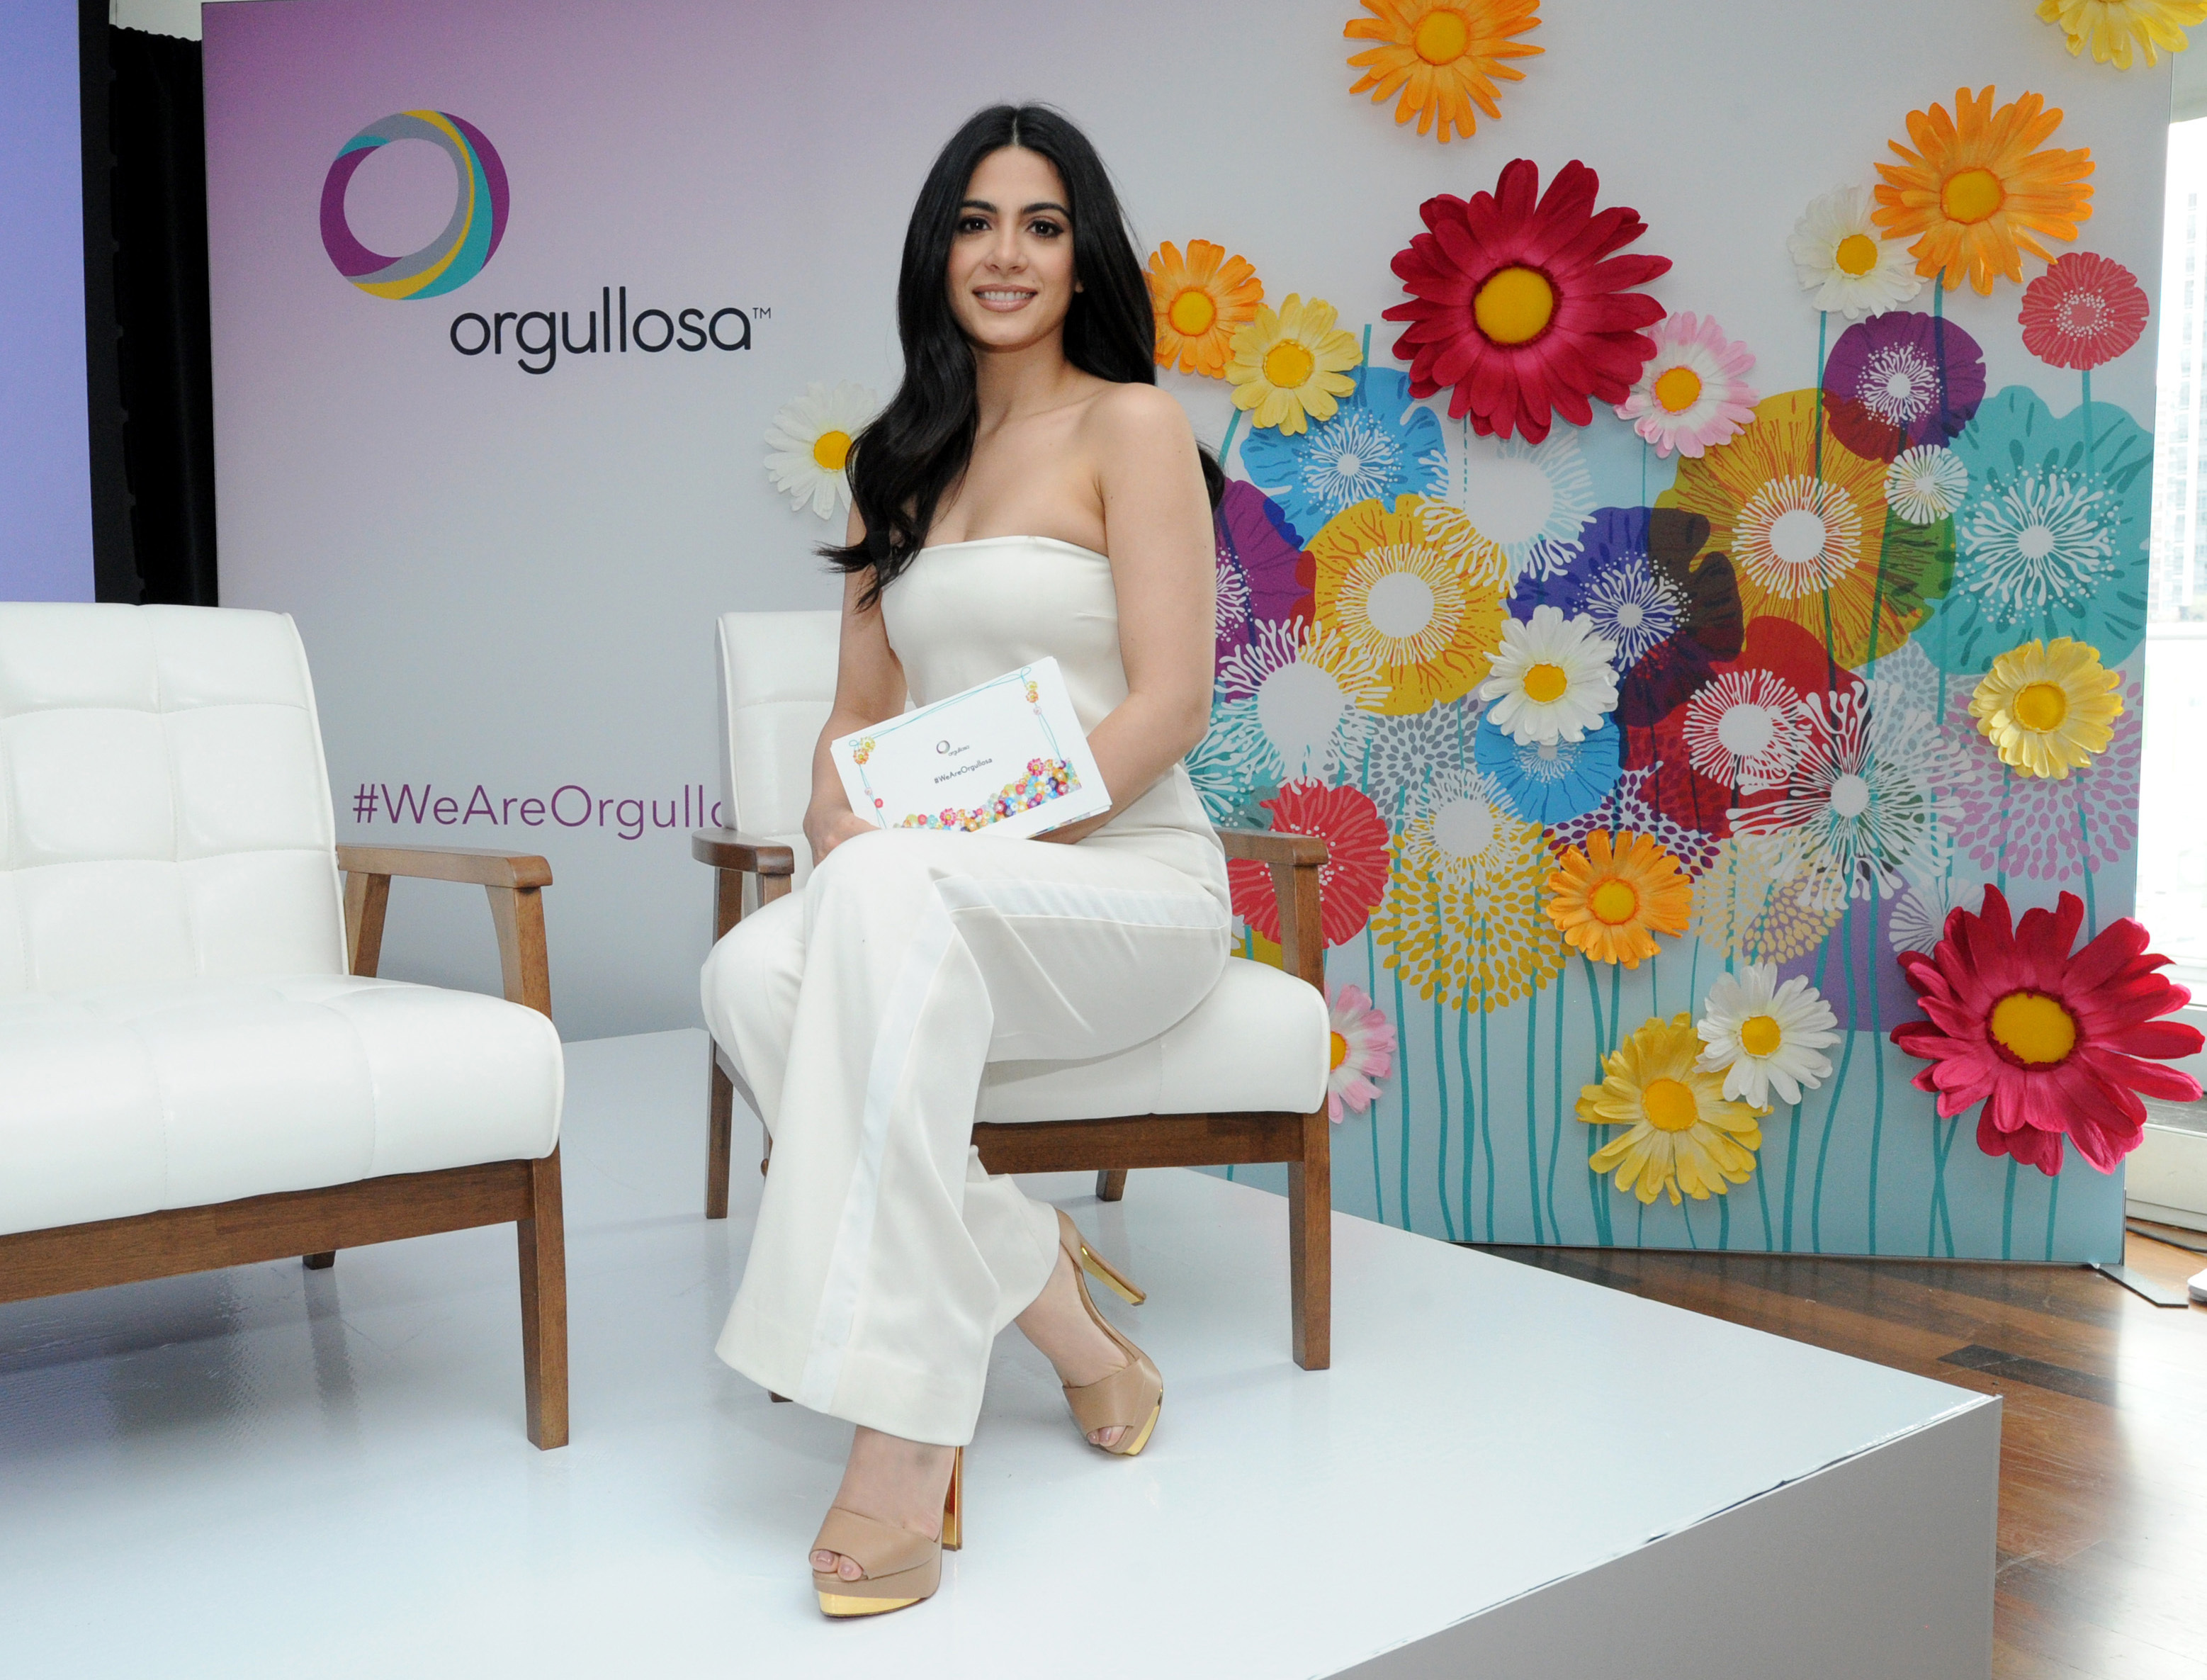 Actress Emeraude Toubia unveils a docu-style video launched by P&G's Orgullosa to celebrate the diversity of Latina beauty at the #WeAreOrgullosa event, Tuesday, May 23, 2017 in New York. P&G brands Crest, Herbal Essences, Olay, Pantene, Secret and Venus sponsor the initiative. Visit Orgullosa.com to preview the film. (Photo by Diane Bondareff/Invision for P&G Orgullosa/AP Images)